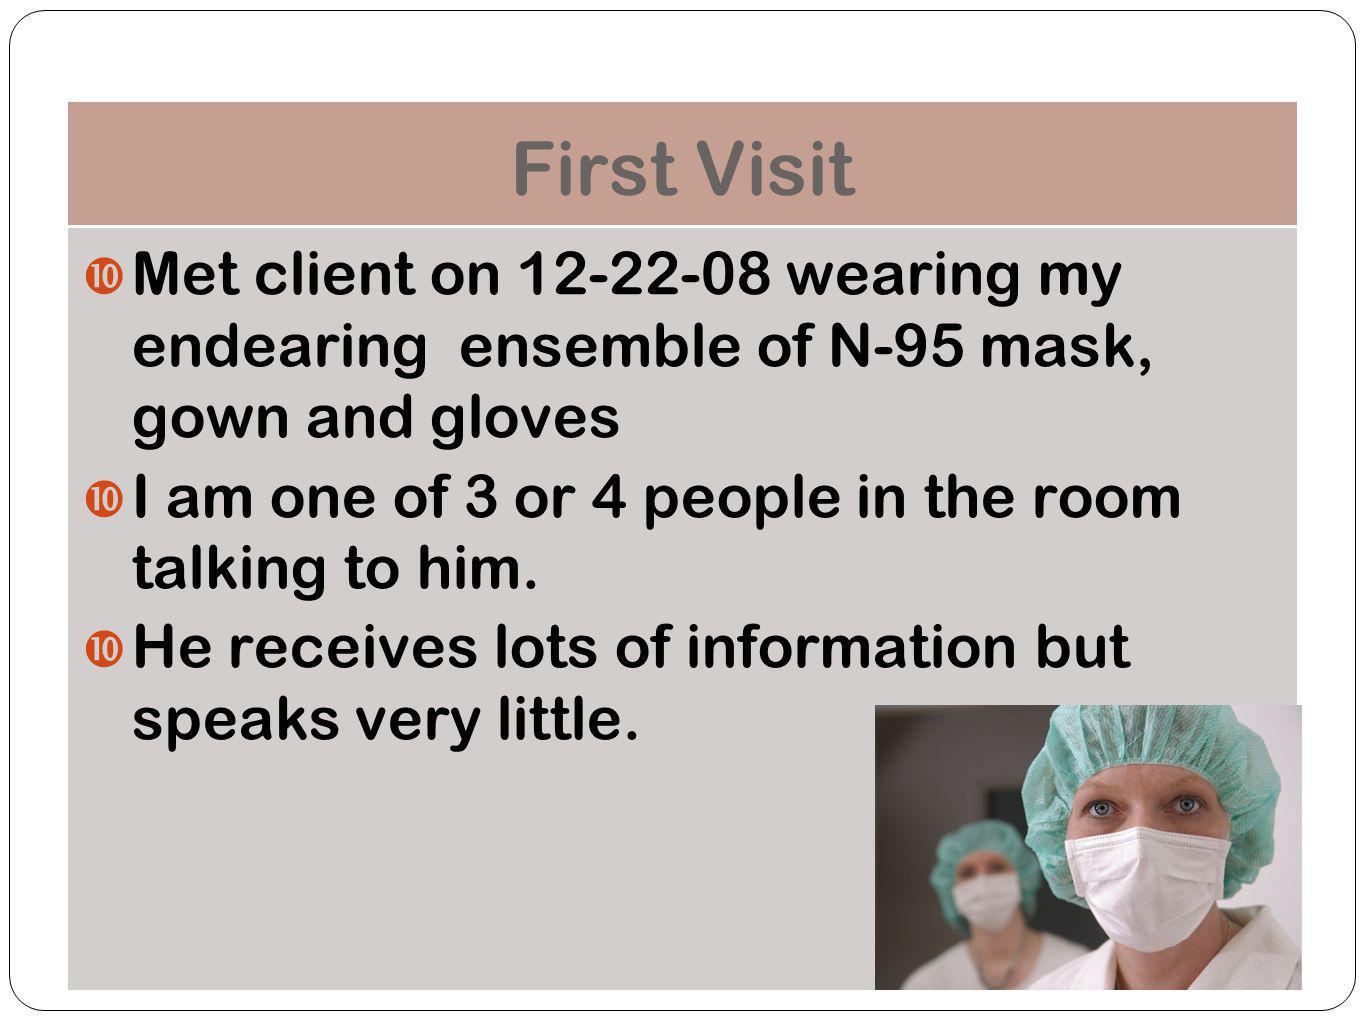 First Visit Met client on 12-22-08 wearing my endearing ensemble of N-95 mask, gown and gloves I am one of 3 or 4 people in the room talking to him.